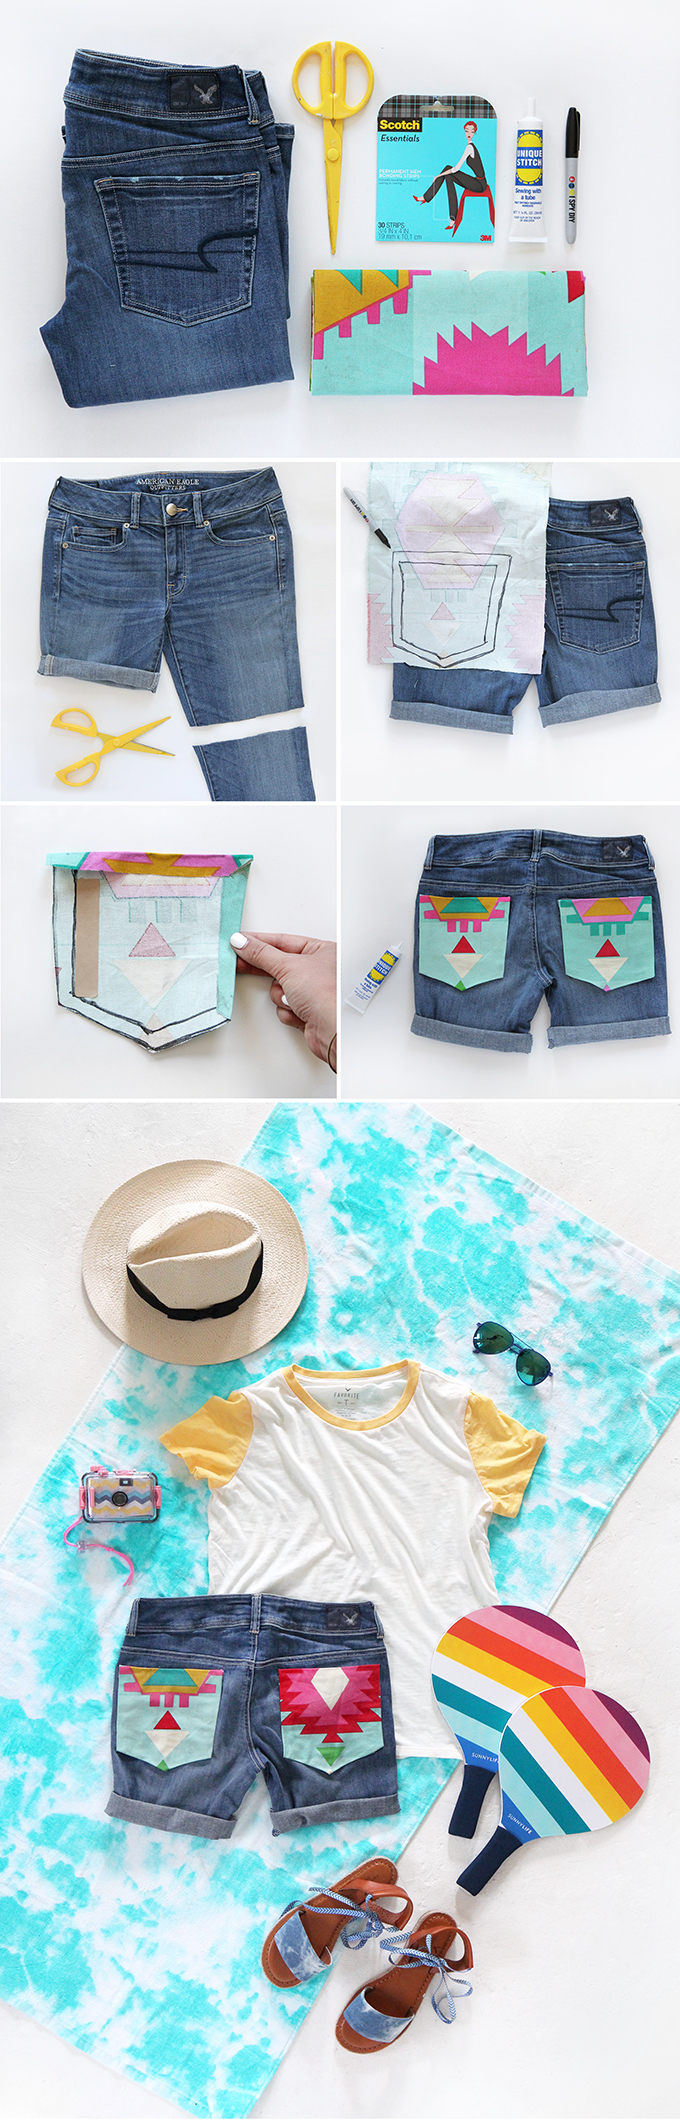 Ispydiy_backpocket